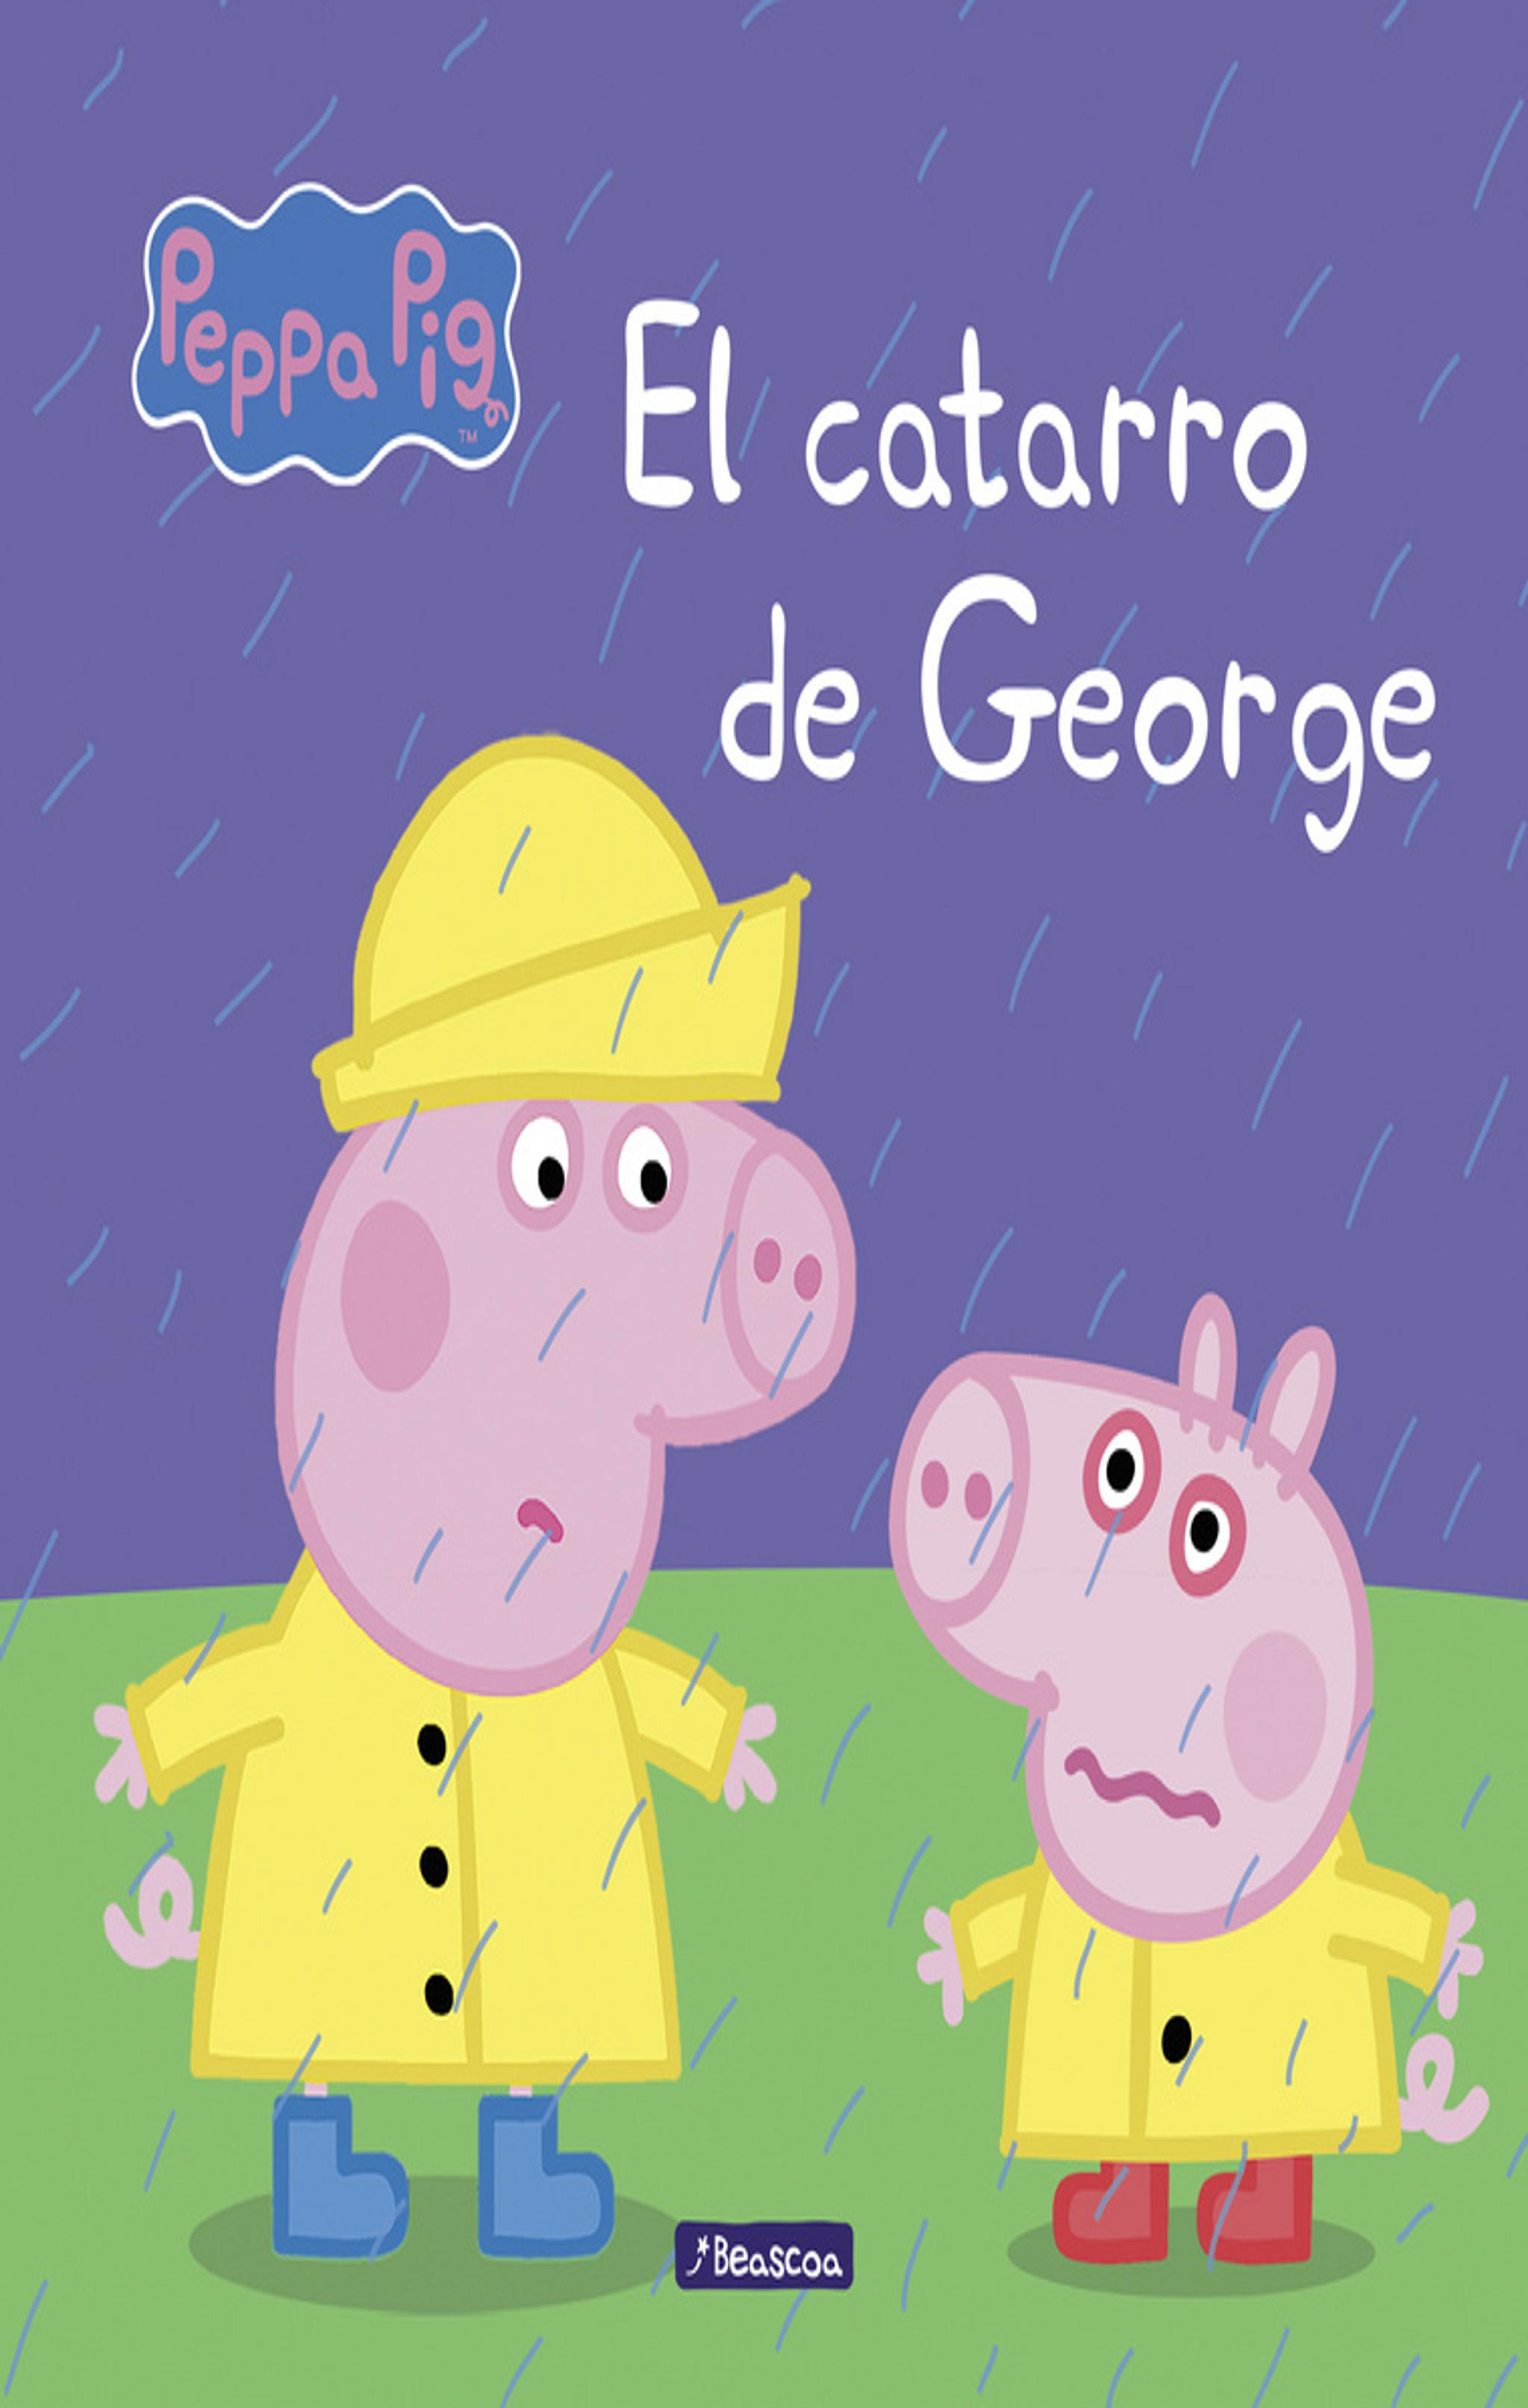 EL CATARRO DE GEORGE - Peppa Pig